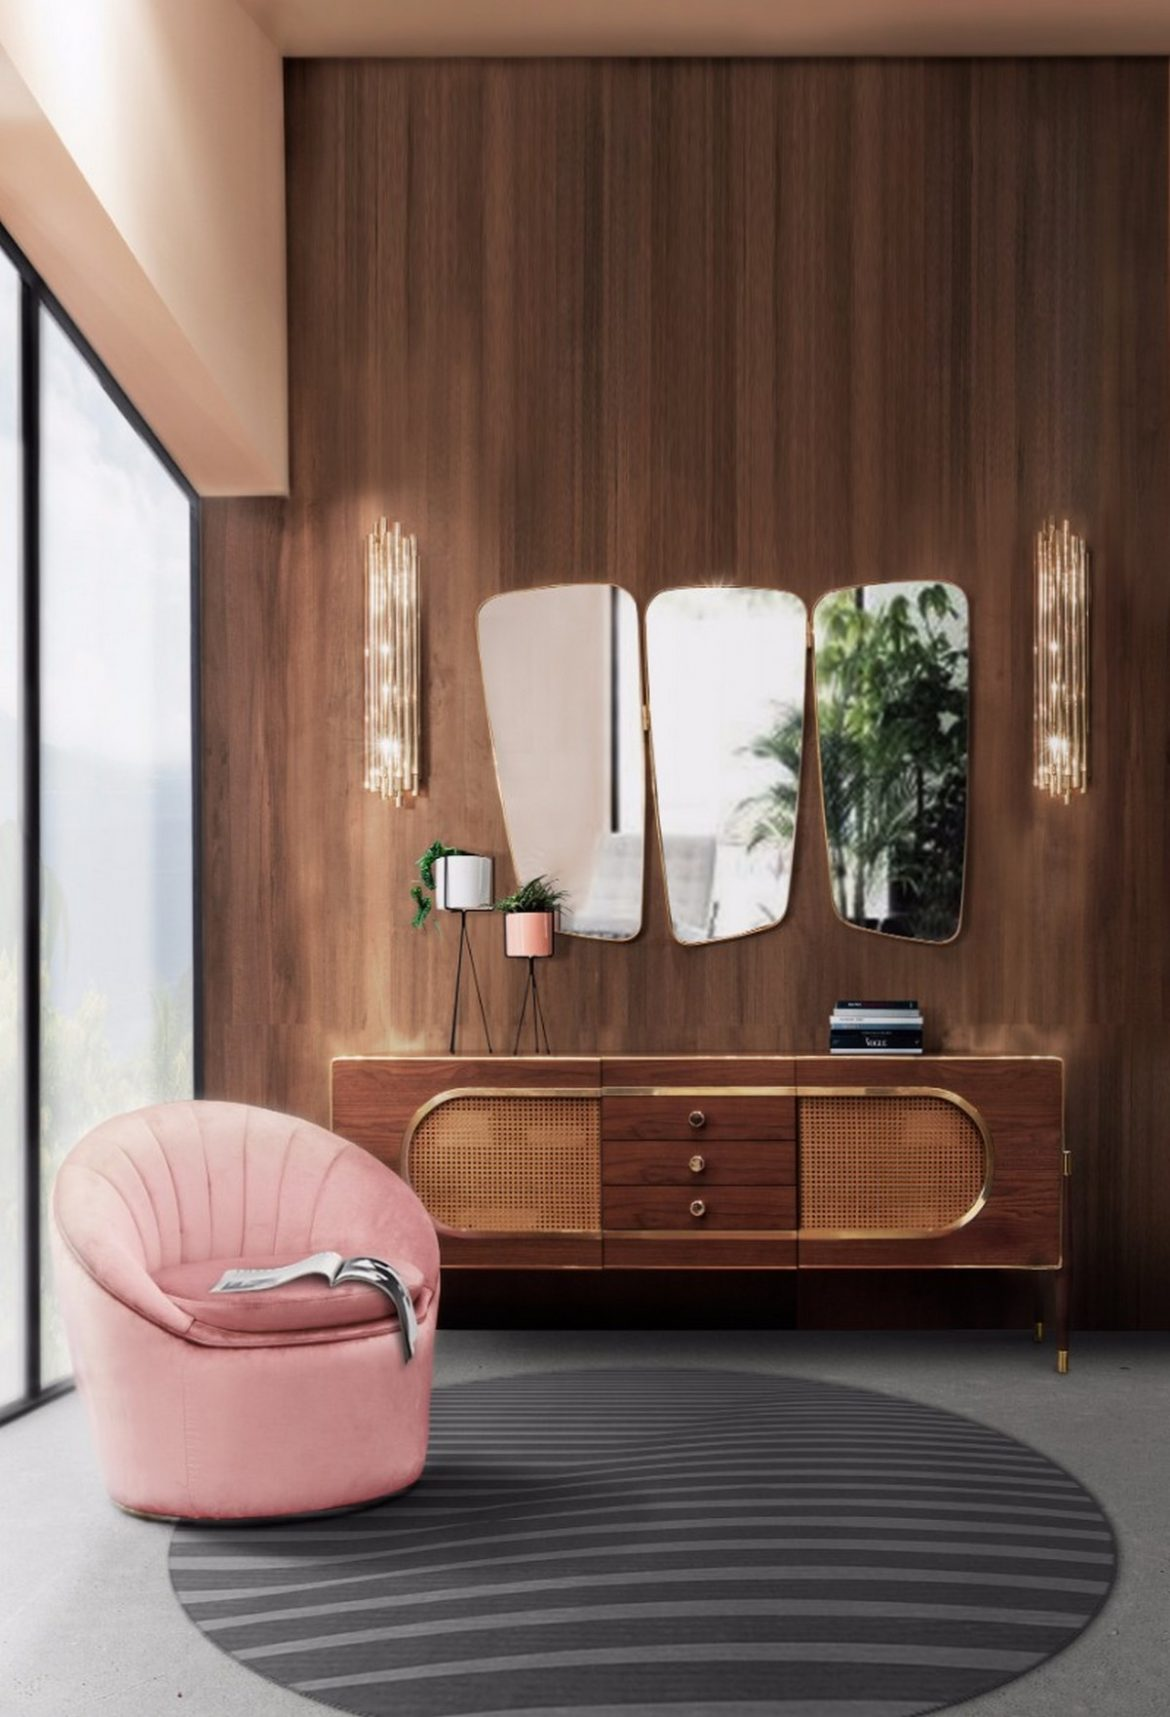 sideboards Mid Century Decor Ideas: Top 5 Sideboards That You Will Love! dandy